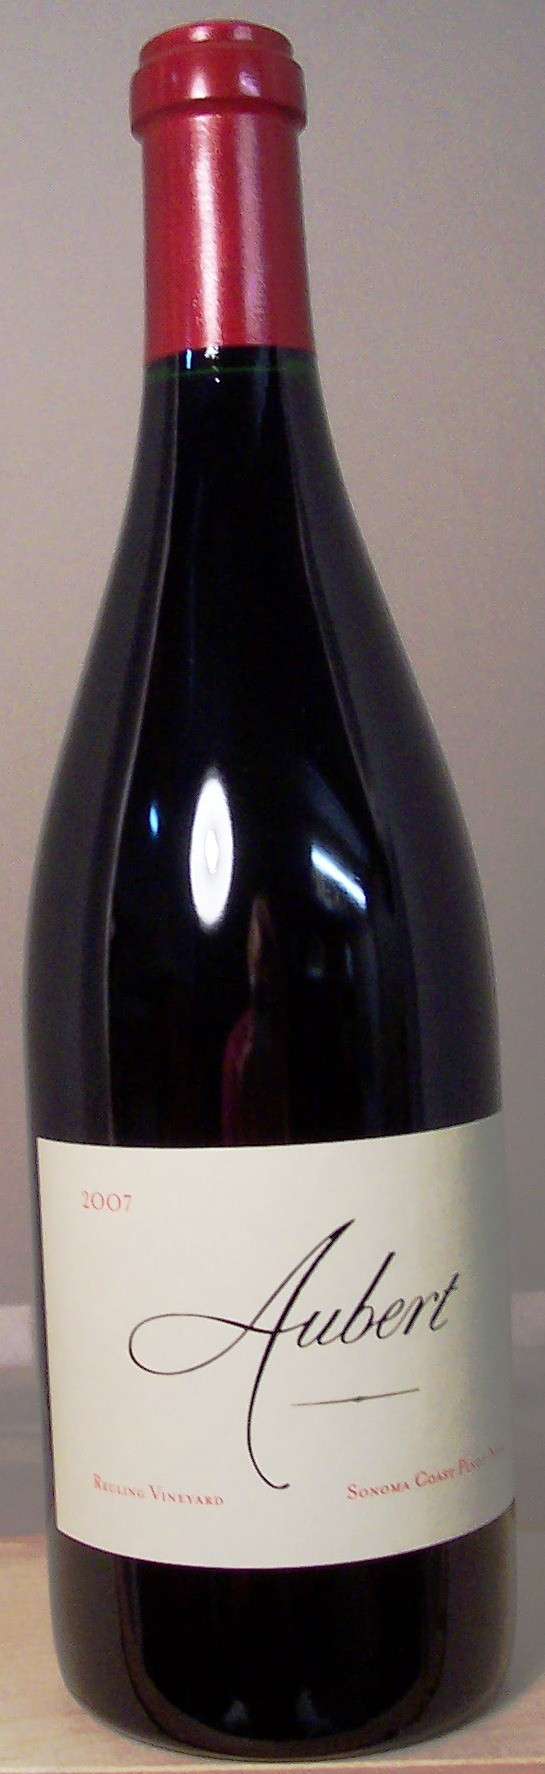 Aubert Wines Pinot Noir Reuling Vineyard Sonoma Coast 2007